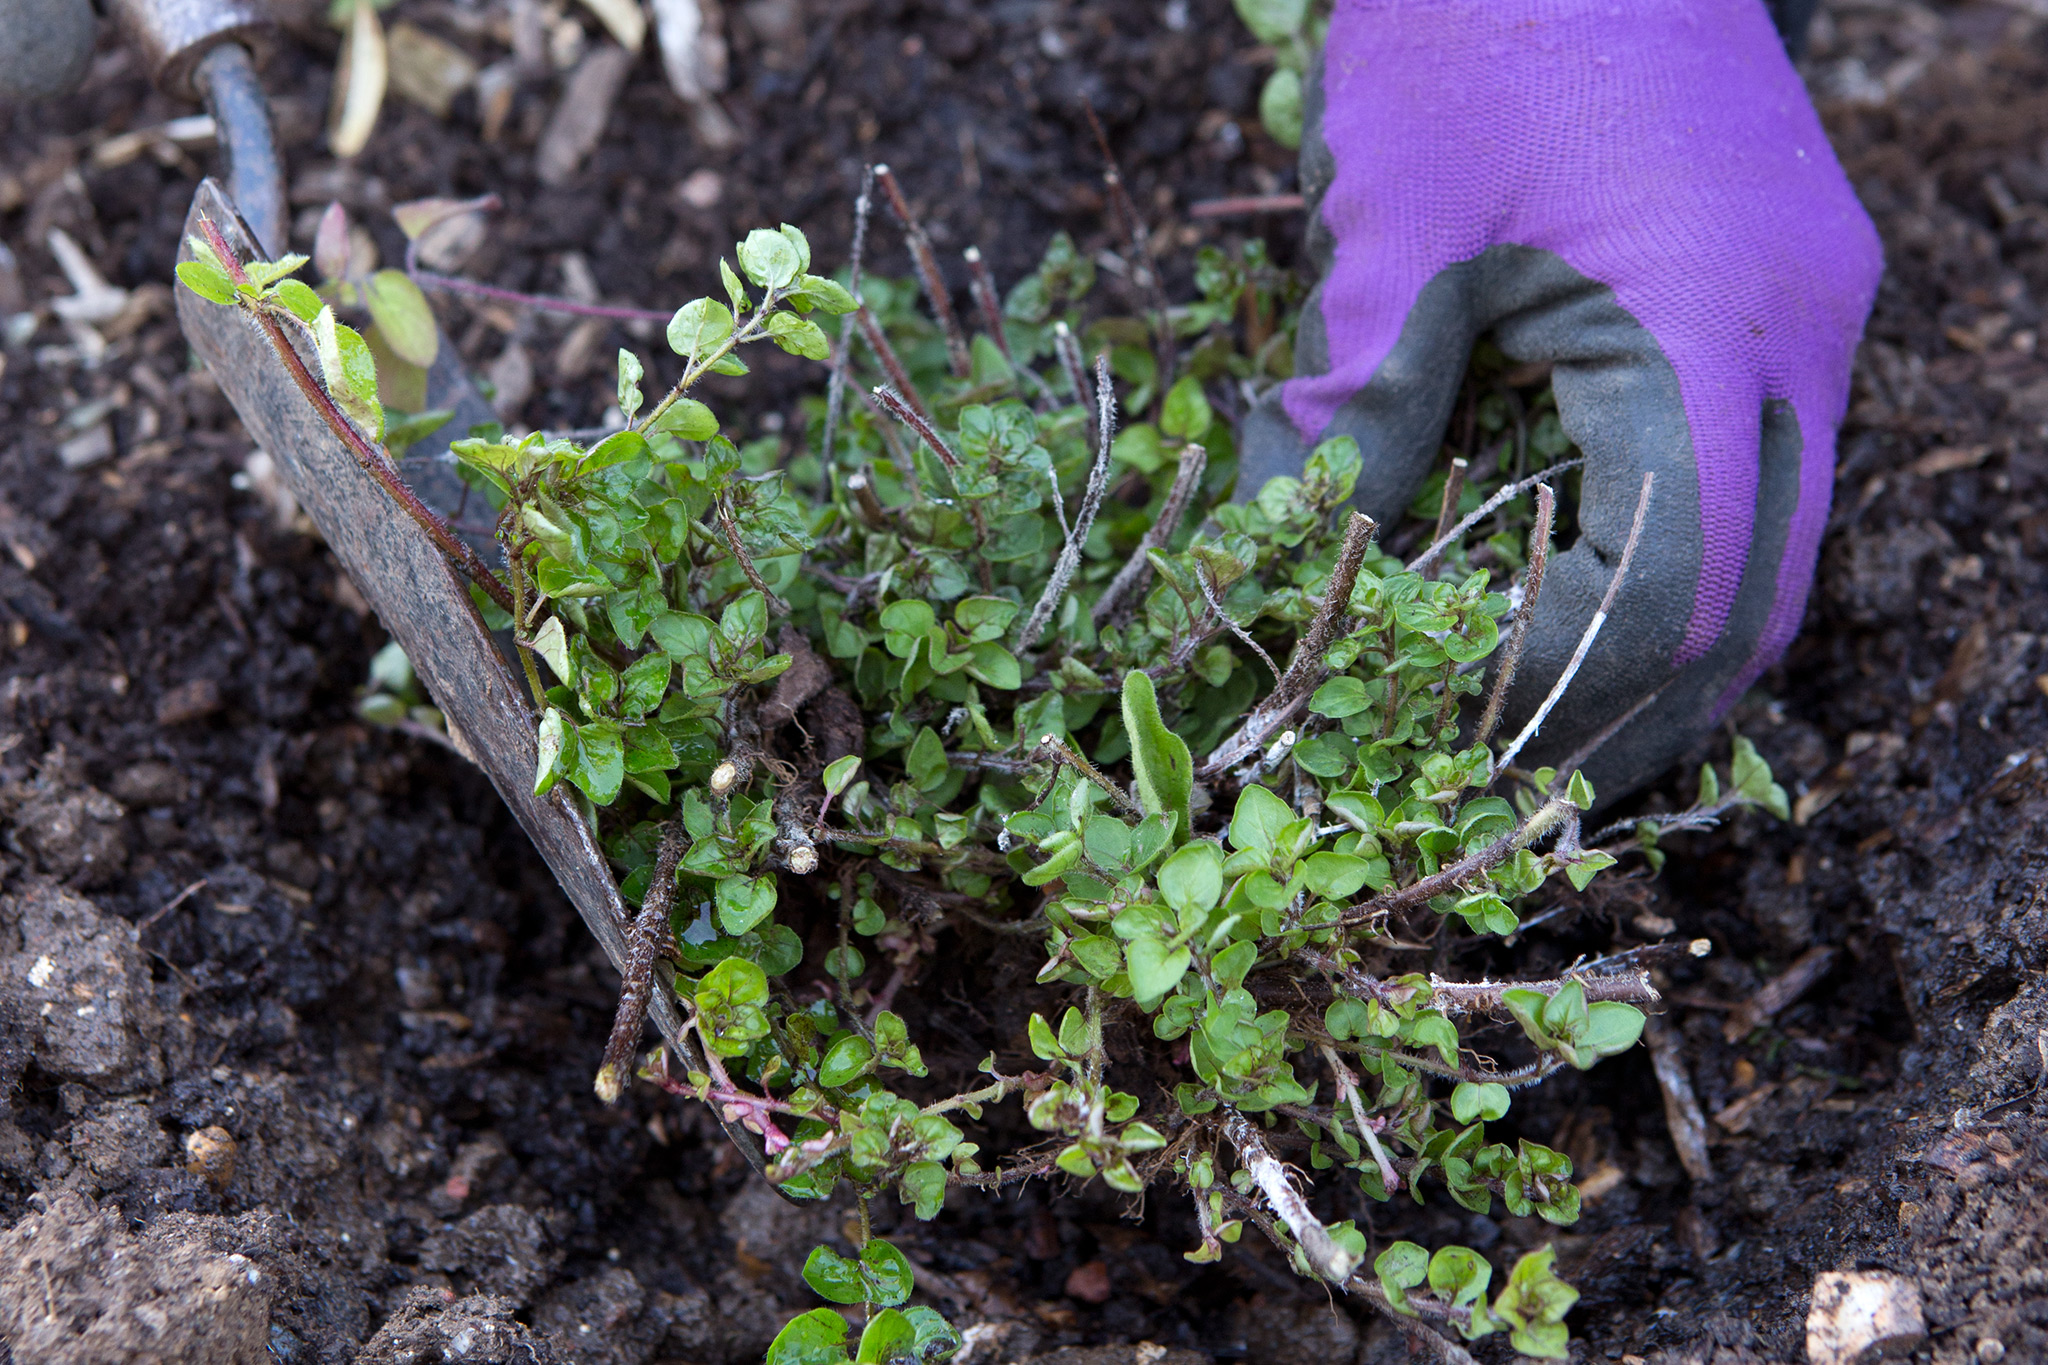 How to Divide Oregano, Chives and Lemon Balm